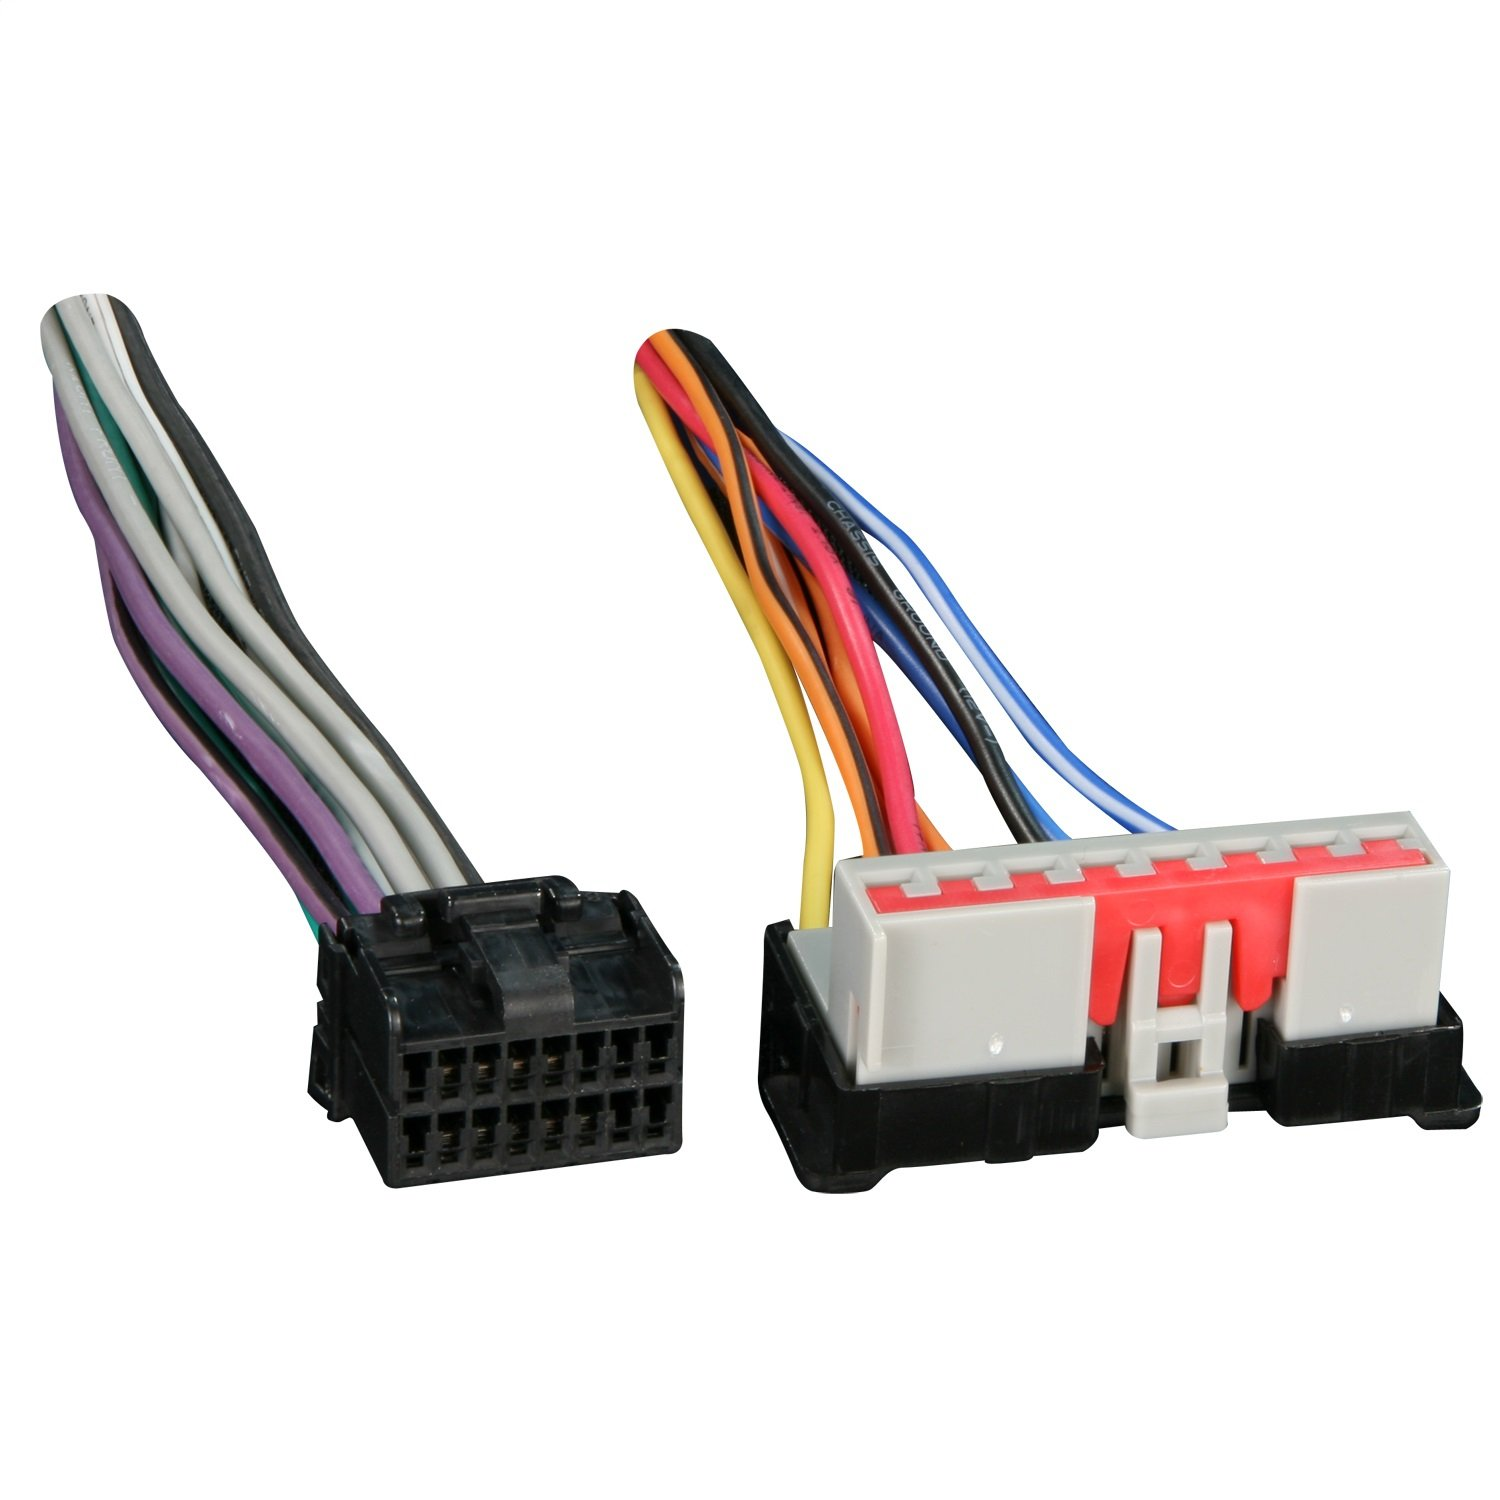 Amazon.com: Metra Reverse Wiring Harness 71-5600 for 1996-up Ford F-150/Explorer:  Car Electronics